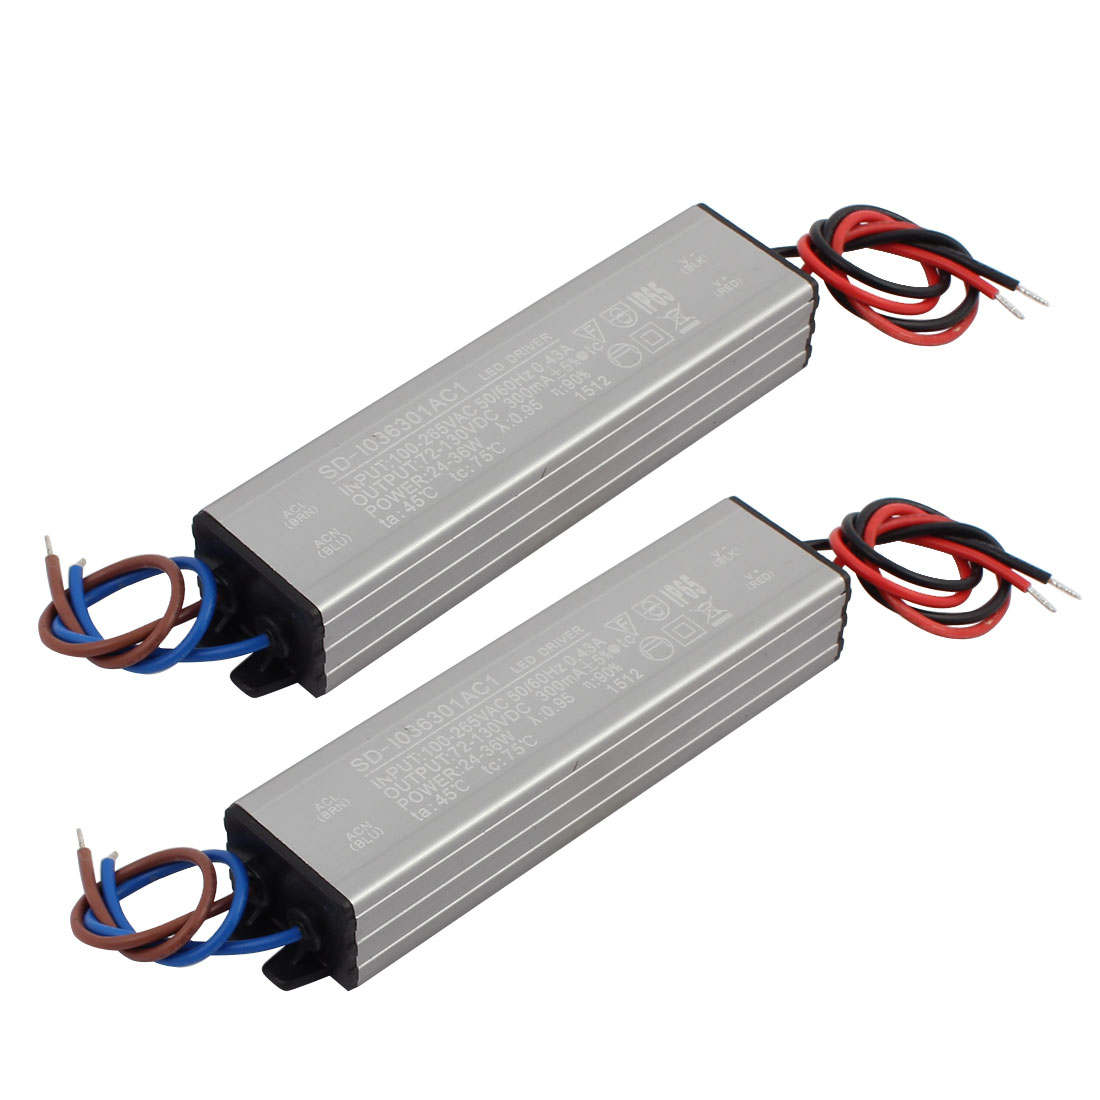 2Pcs AC100-265V to DC72-130V 24-36W Transformer IP65 Waterproof LED Driver Power Supply